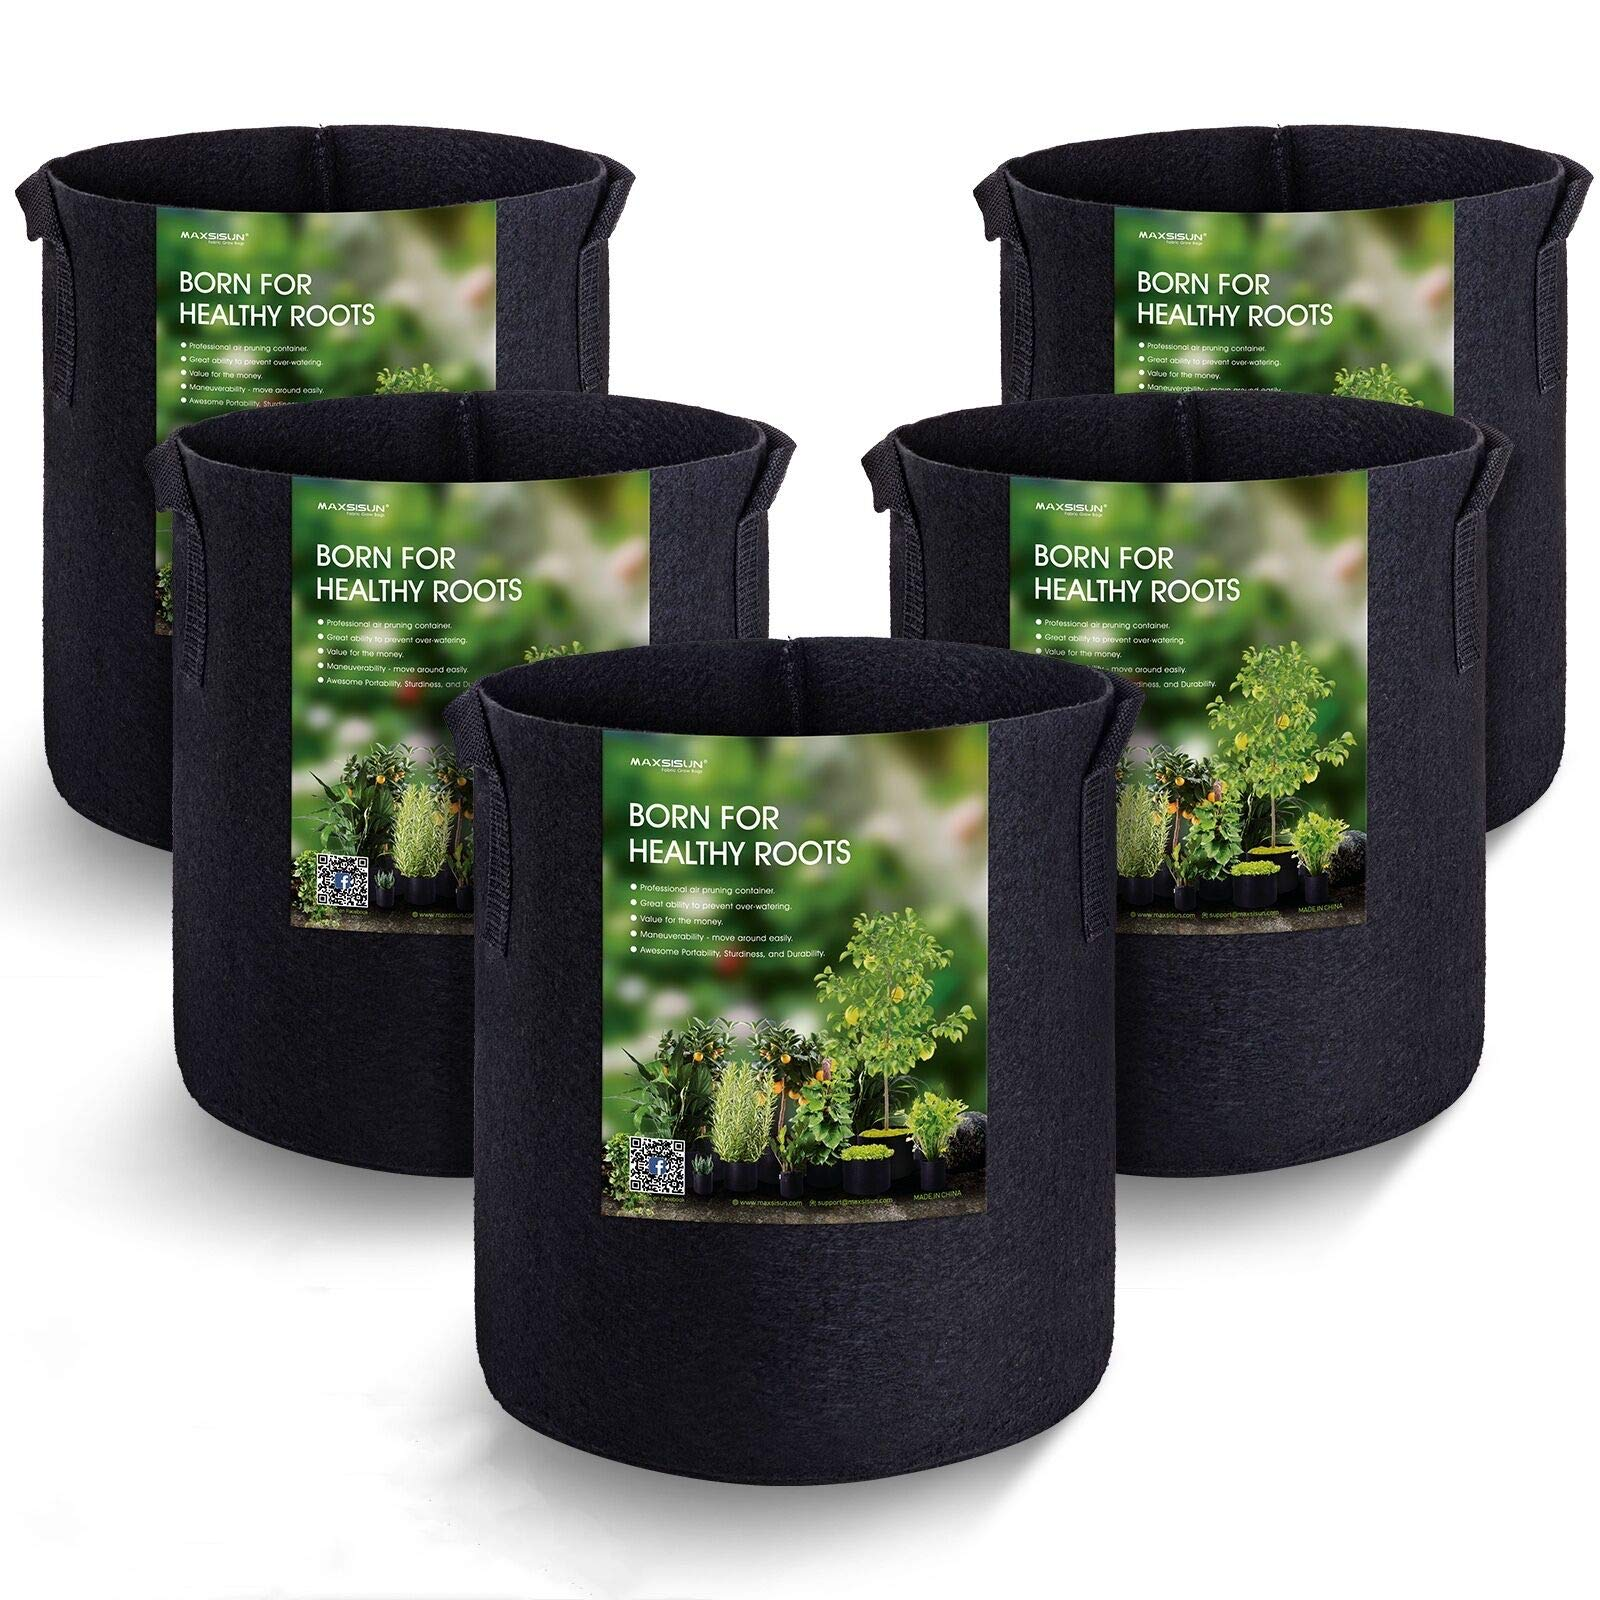 Thickened Nonwoven Aeration Fabric Pots Container with Heavy Duty Durable Handles for Garden Indoor Plants VIPARSPECTRA 6-Pack 15 Gallon Grow Bags